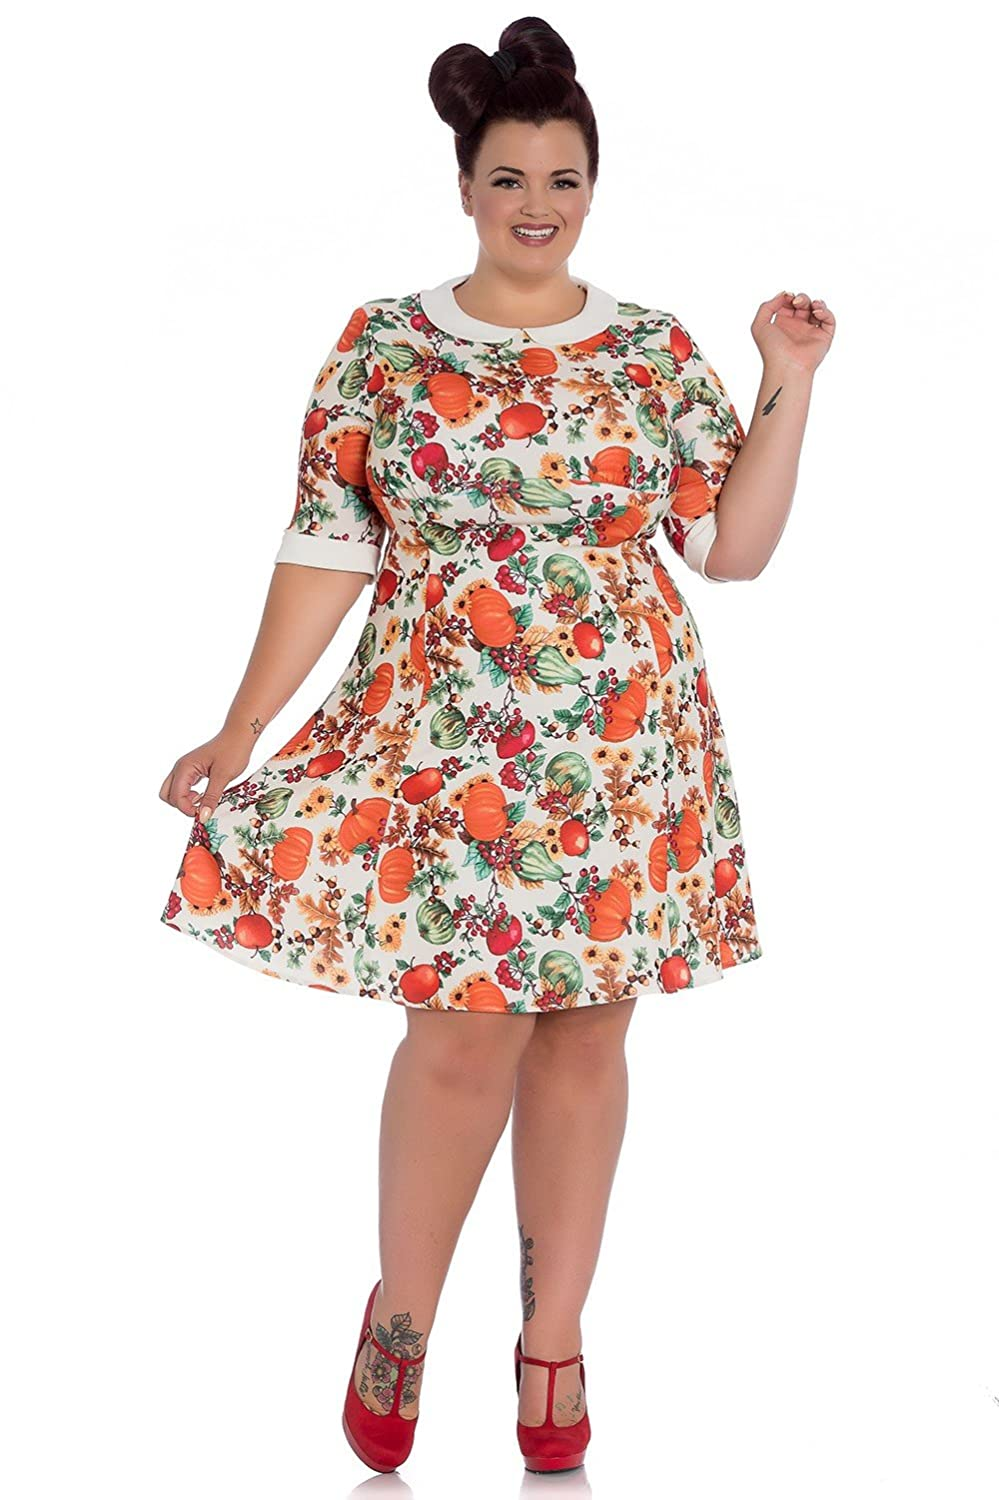 1960s Plus Size Dresses & Retro Mod Fashion Hell Bunny 60s Retro Autumn Pumpkin Berries Mini Dress $59.99 AT vintagedancer.com